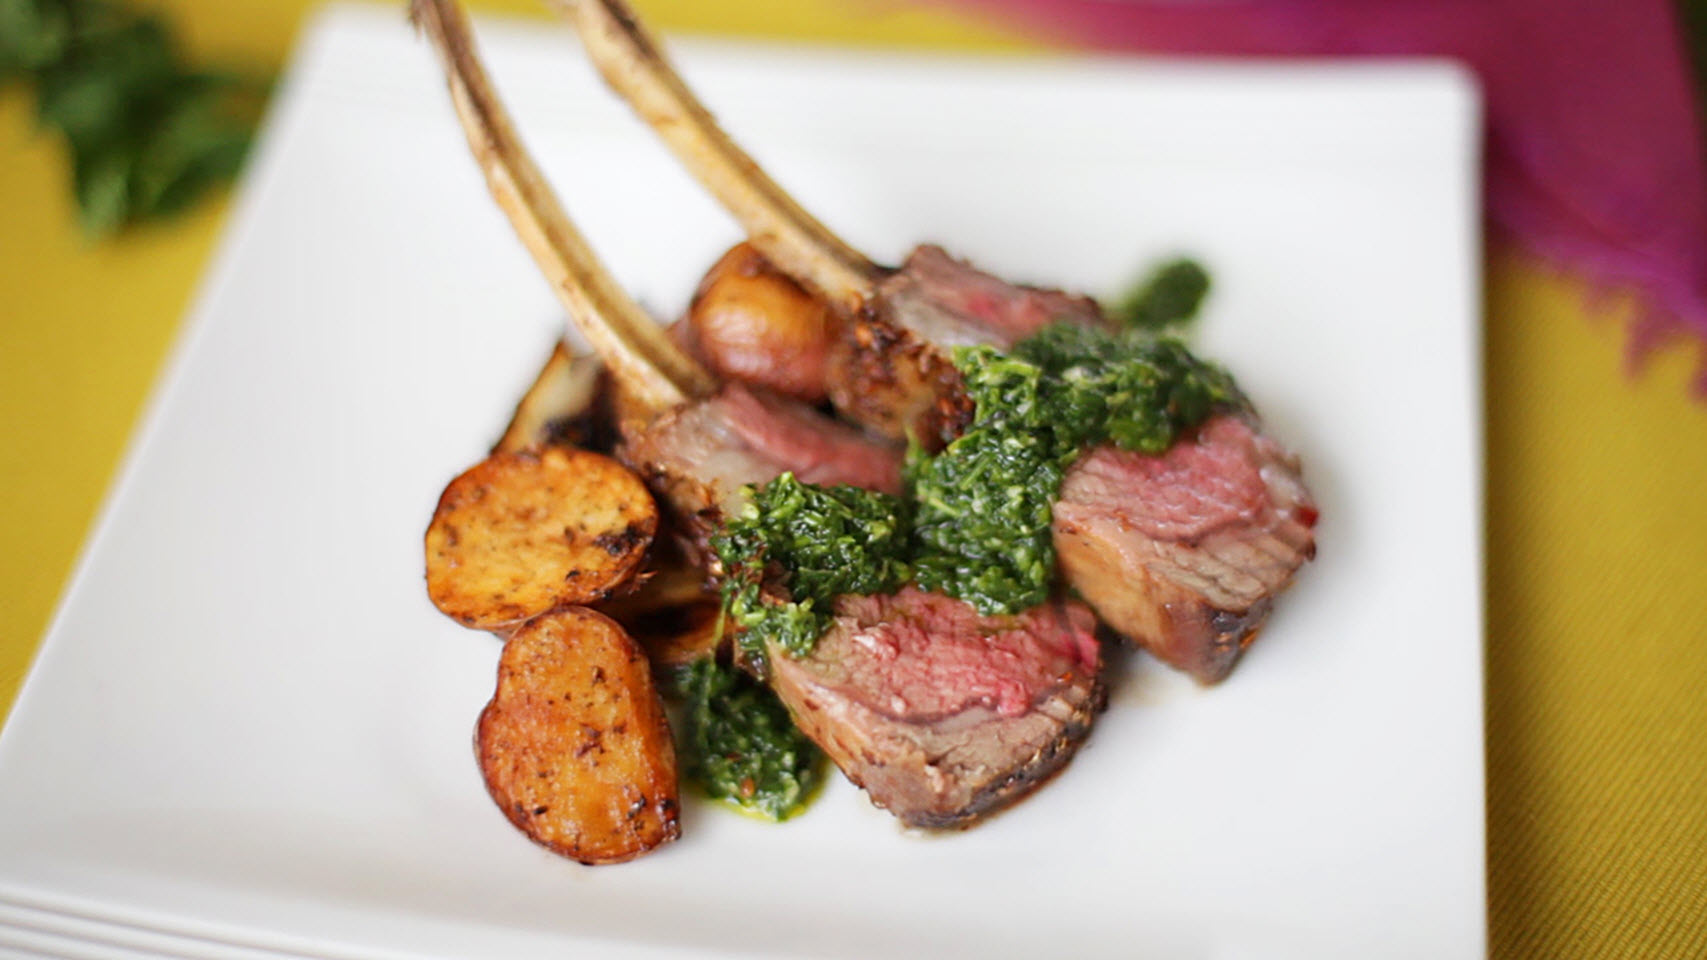 Spice-Crusted Roast Rack of Lamb with Cilantro-Mint Sauce